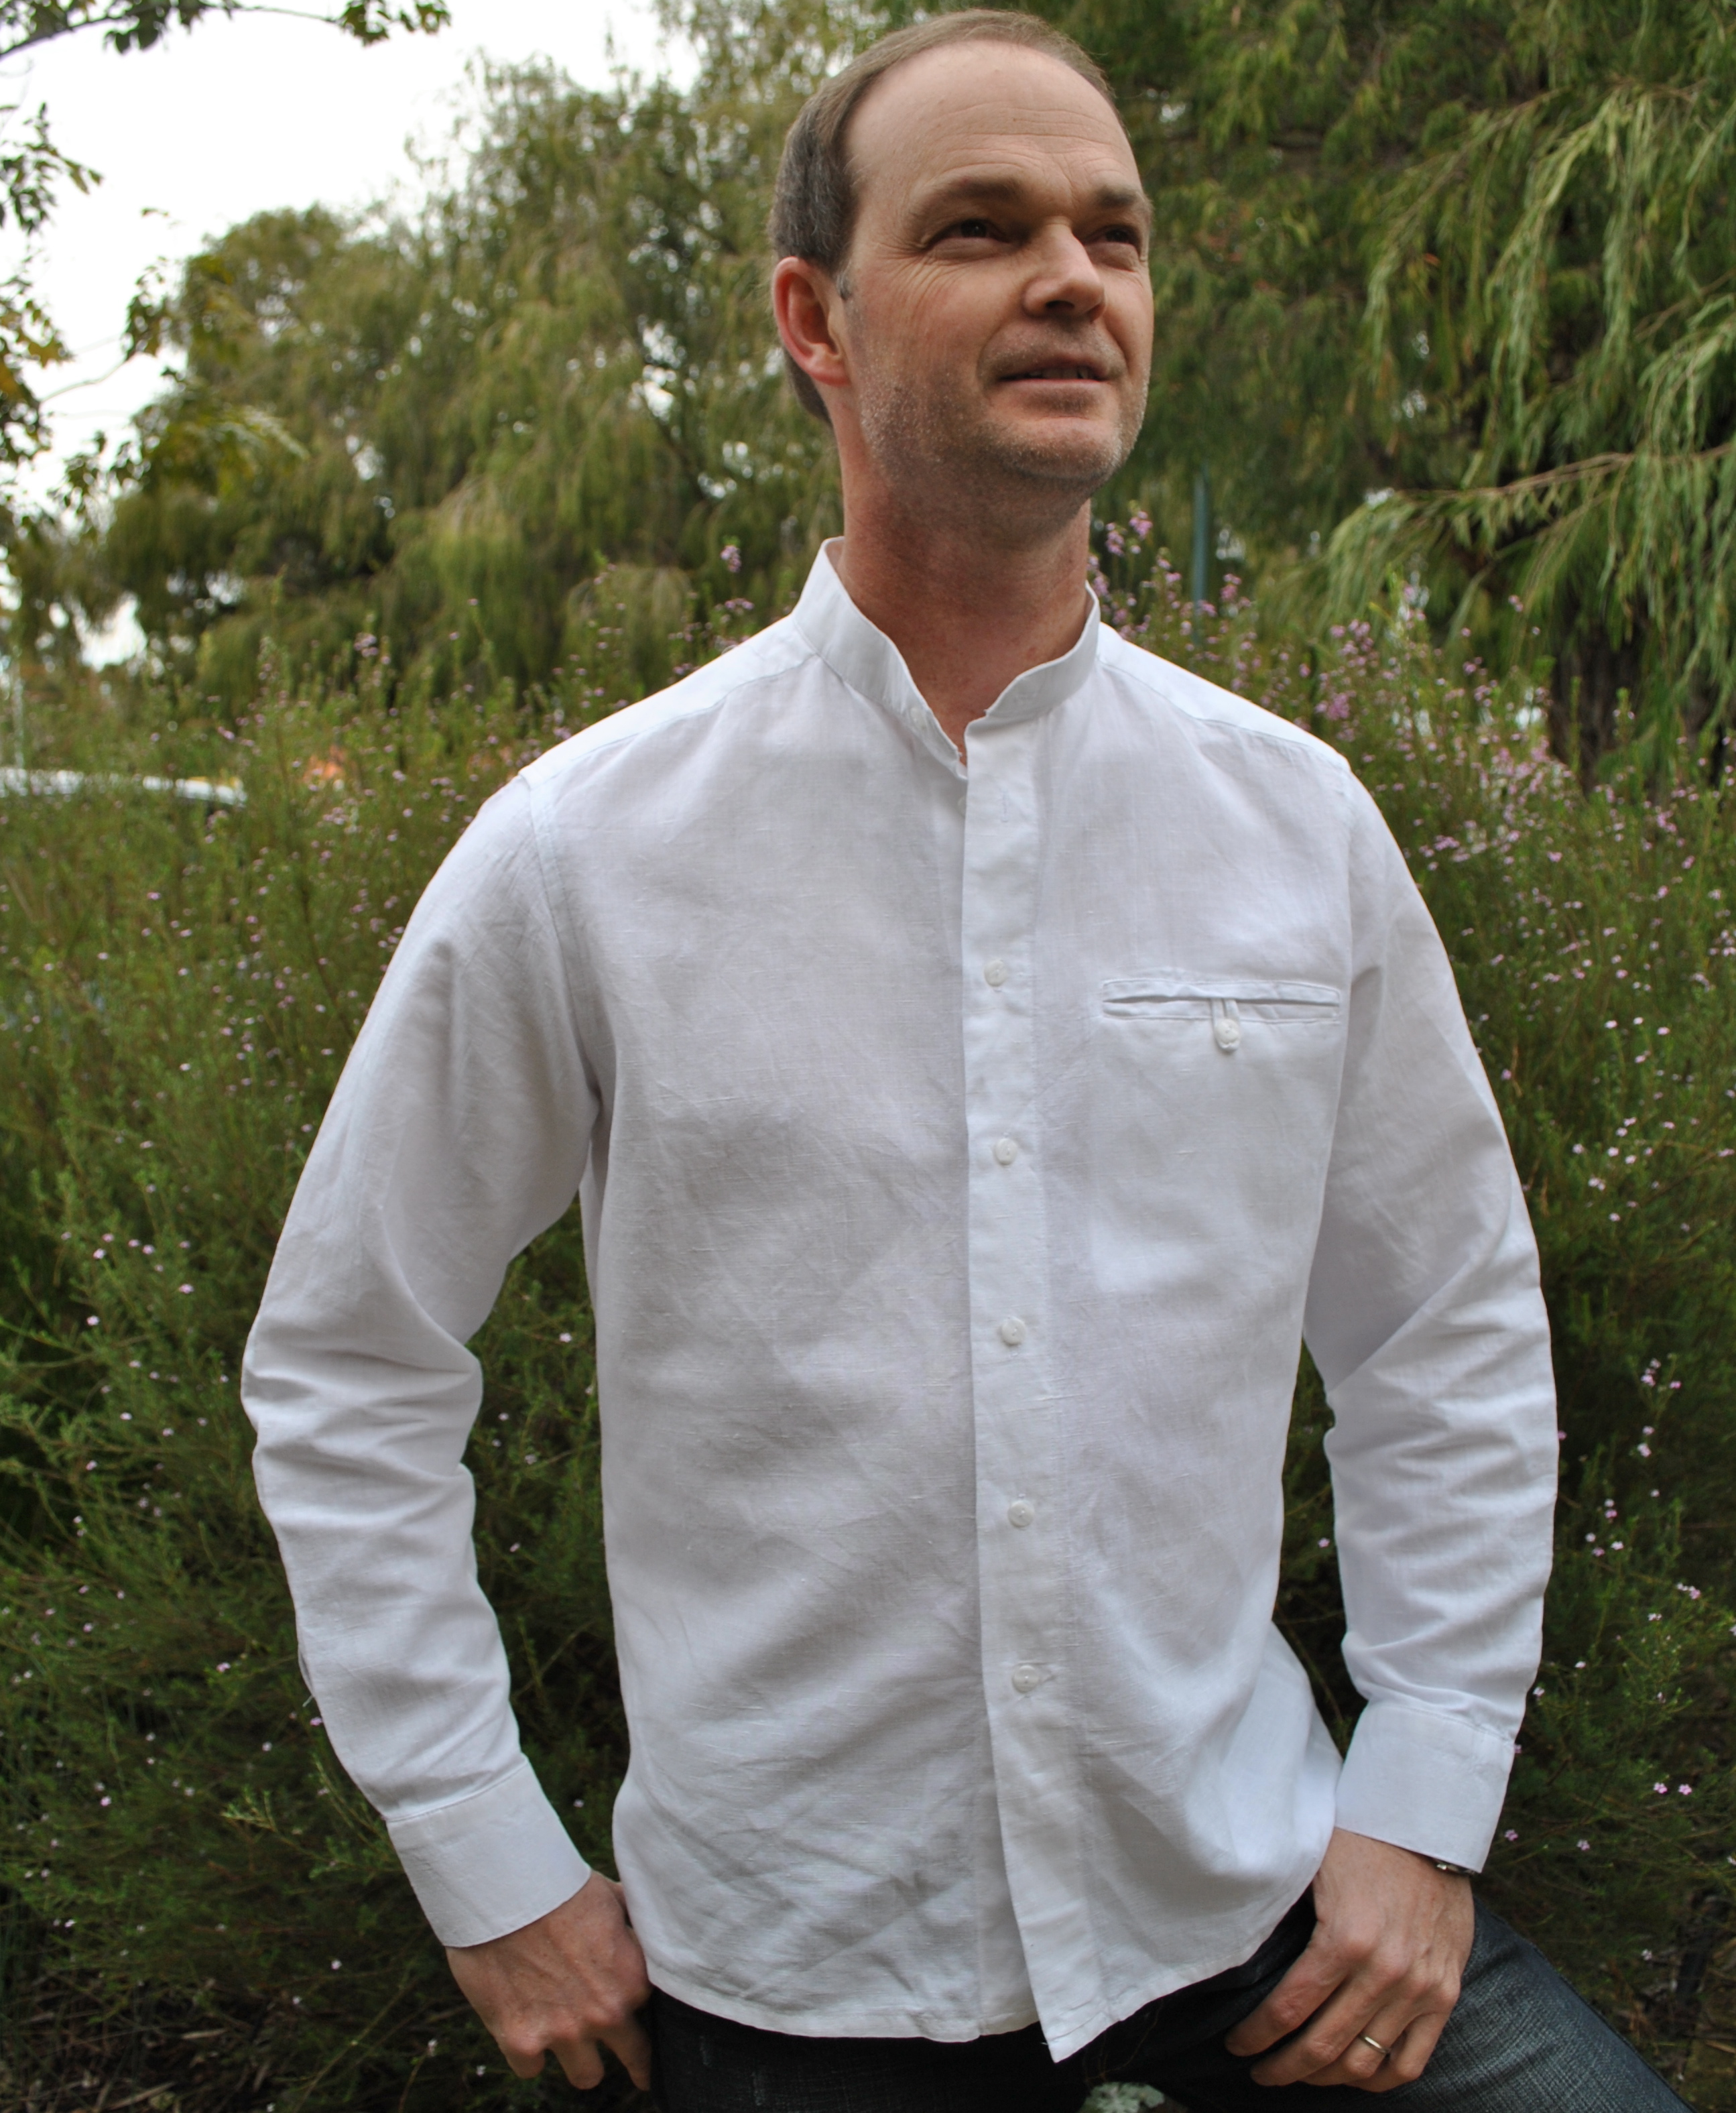 Menswear Collarless Shirt Sewing Projects Burdastyle Com